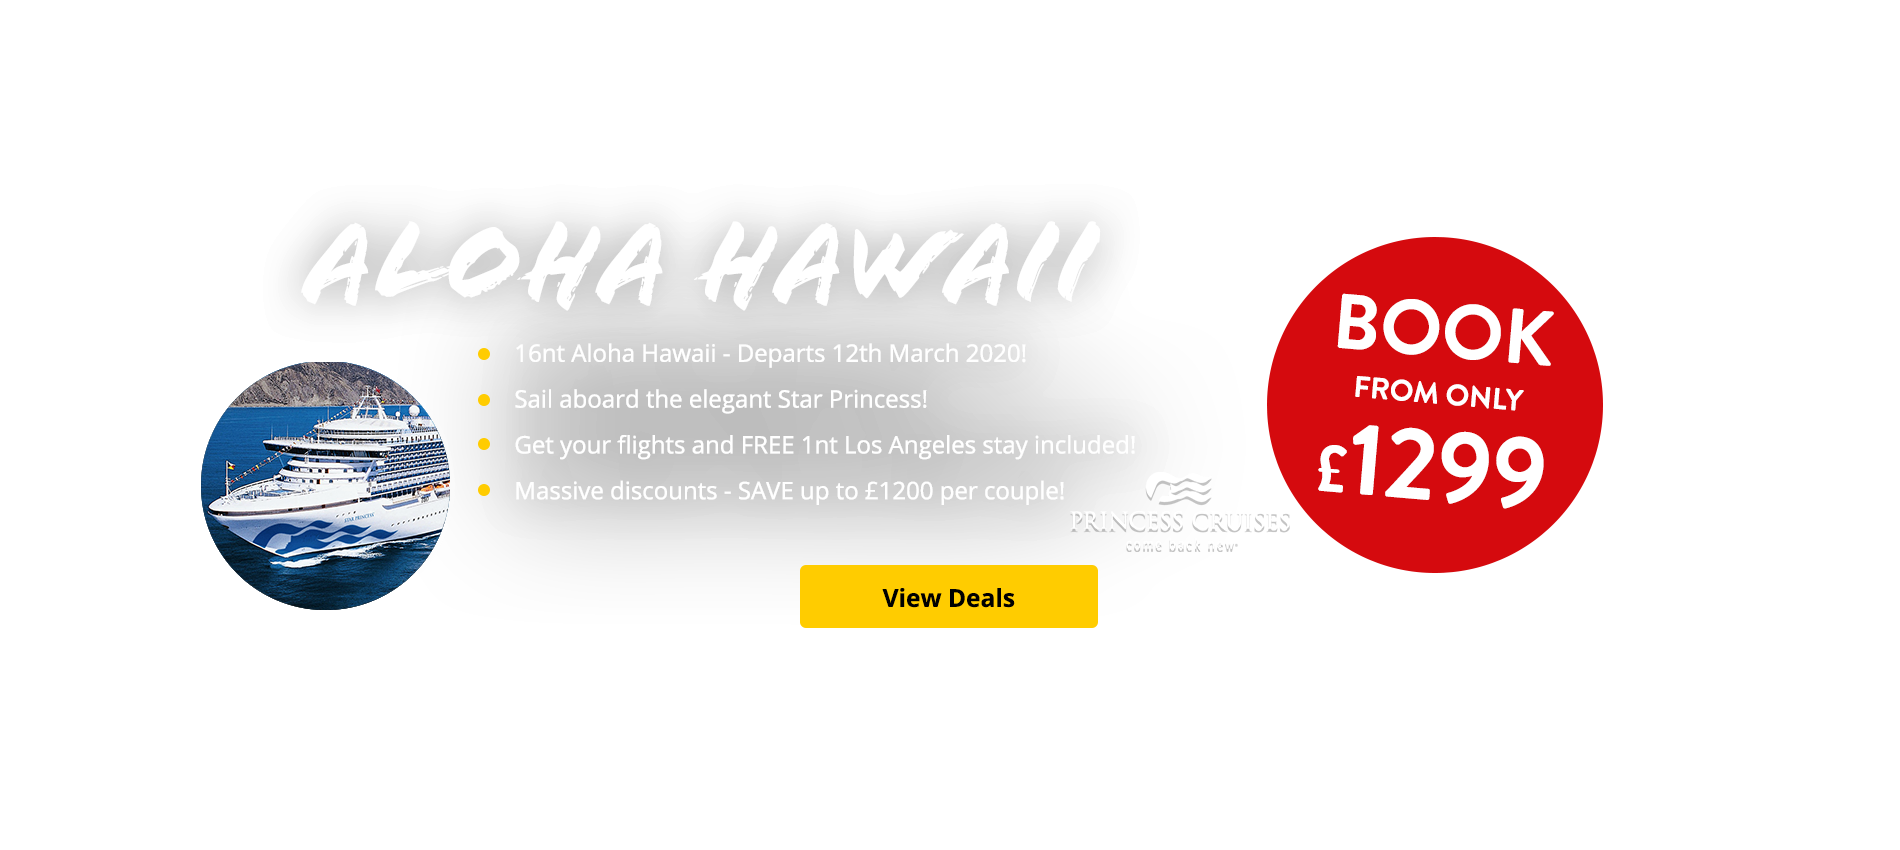 16nt Aloha Hawaii - Departs 12th March 2020! Sail aboard the elegant Star Princess! Get your flights and FREE 1nt Los Angeles stay included! Massive discounts - SAVE up to £1200 per couple!